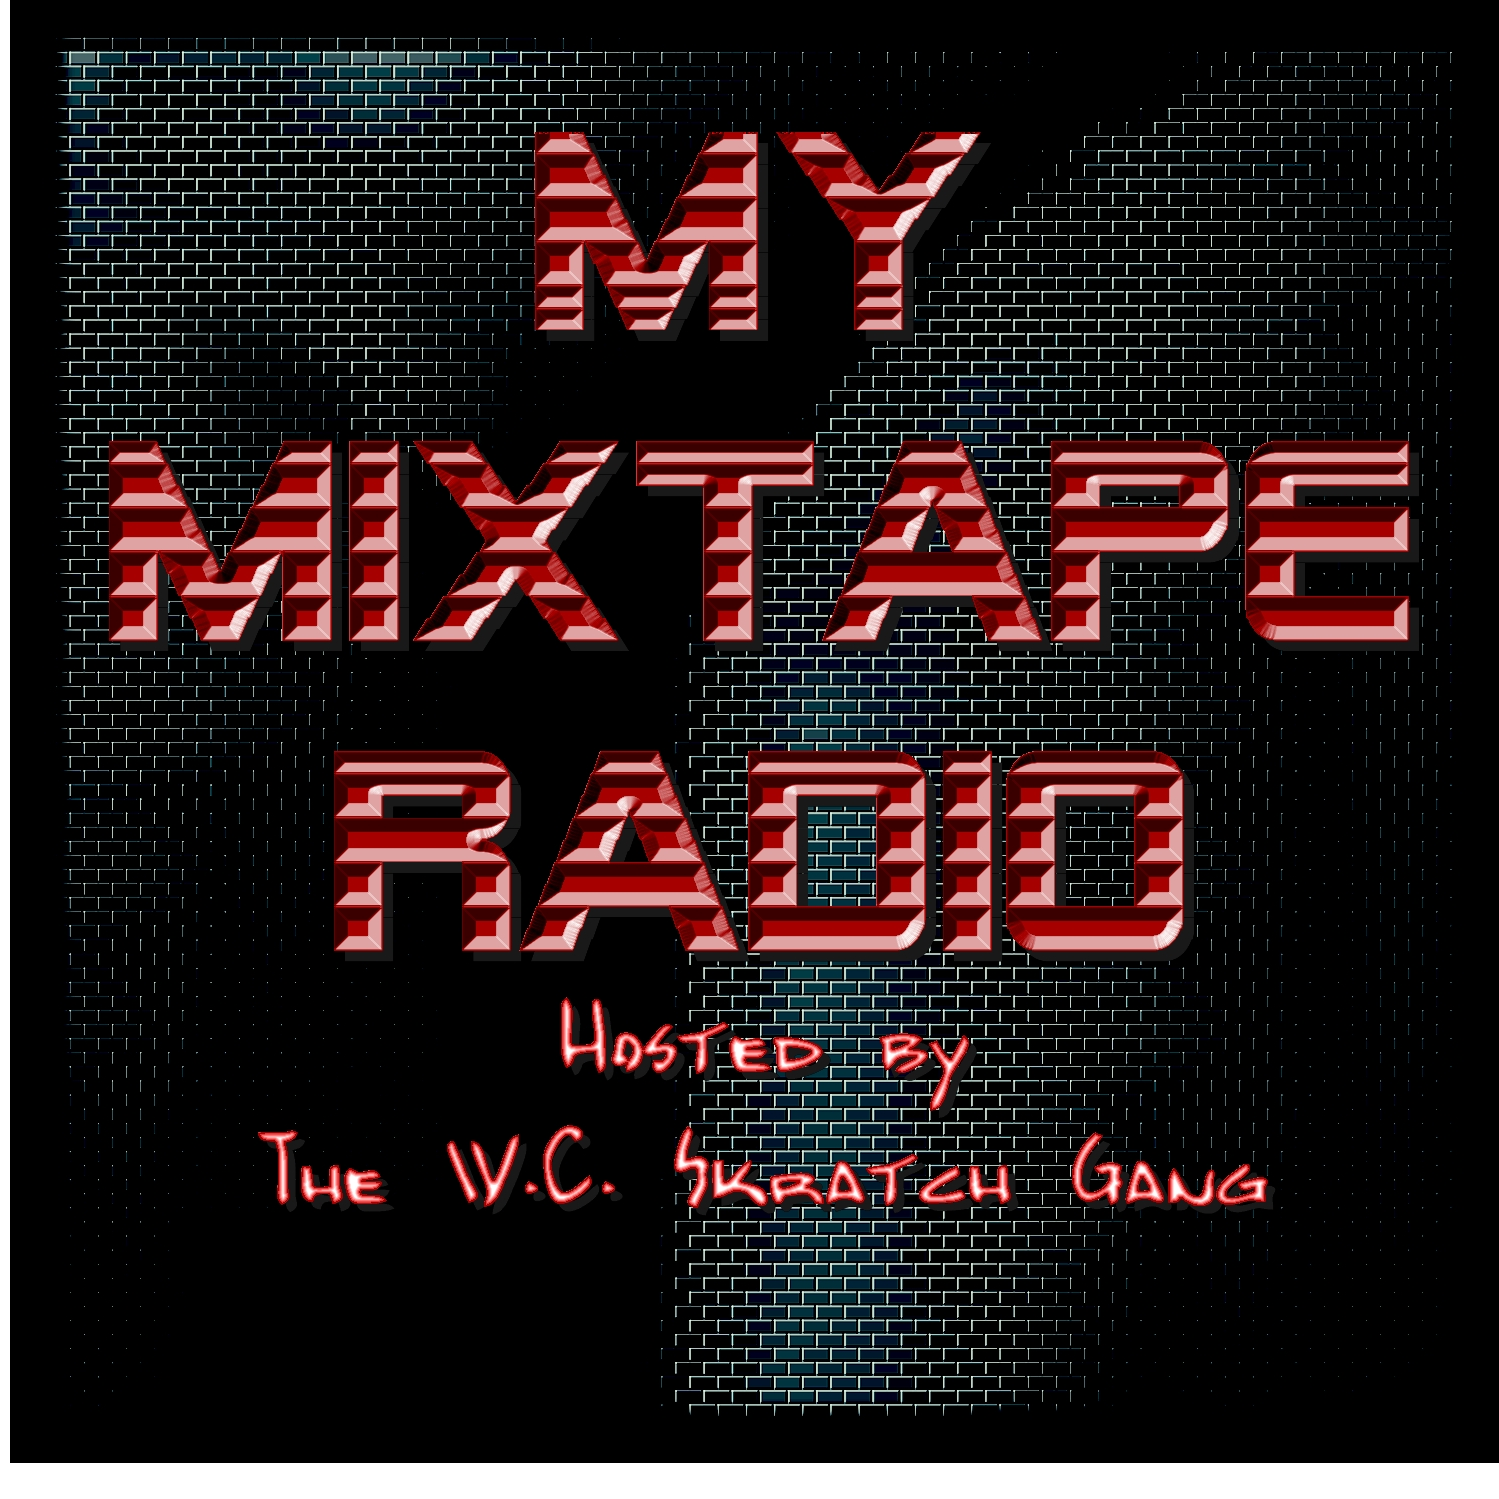 My Mixtape Radio